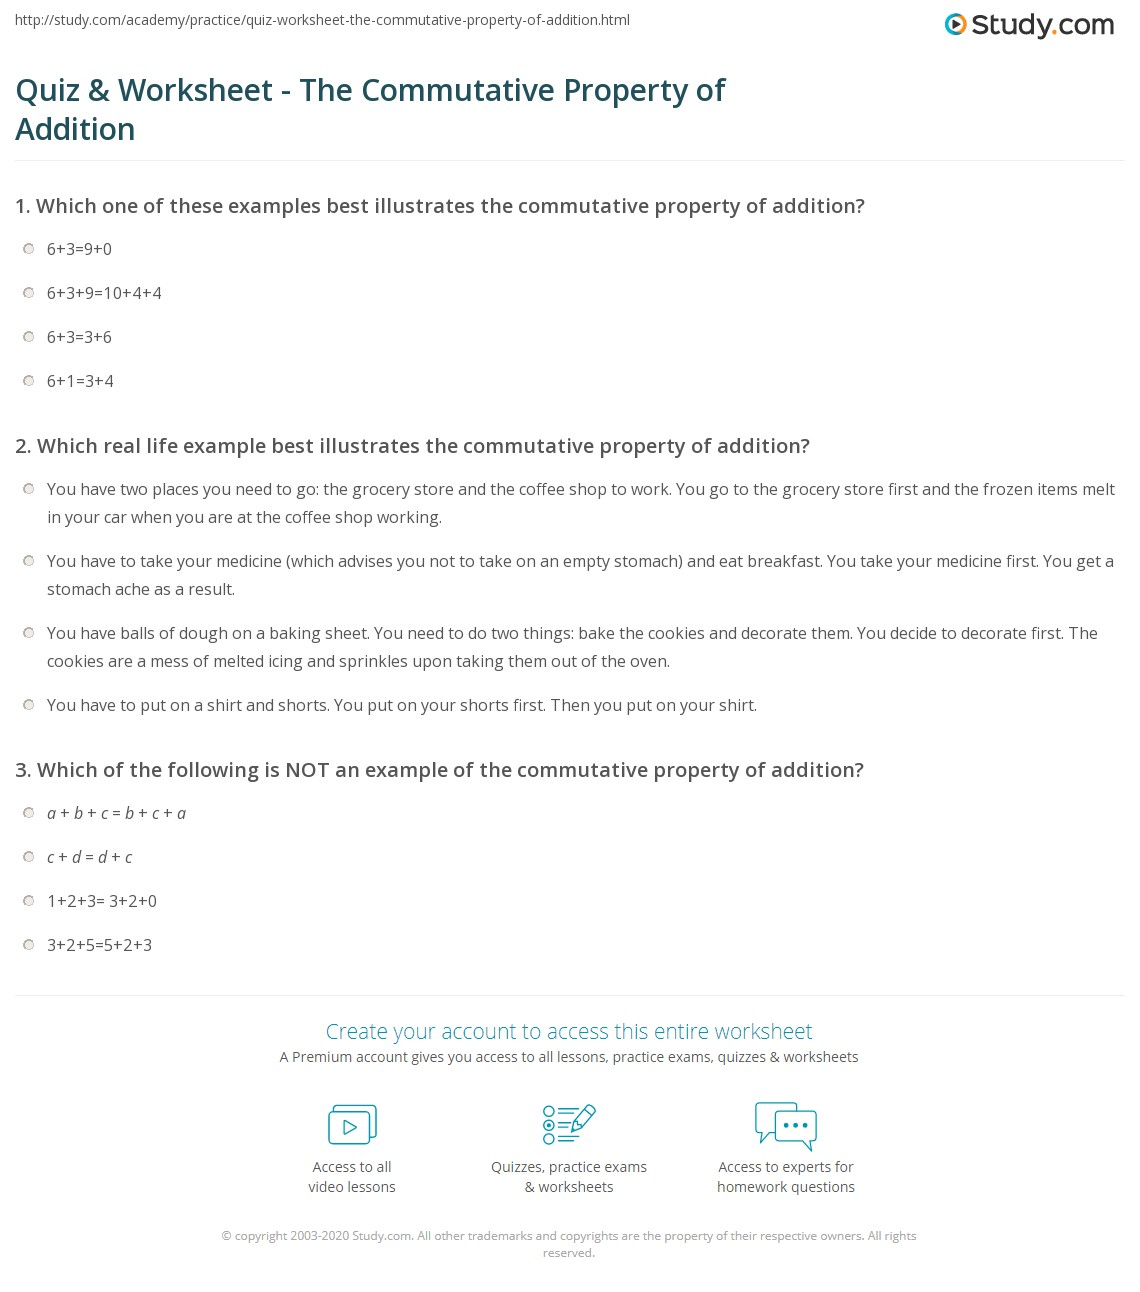 quiz  worksheet  the commutative property of addition  studycom print commutative property of addition definition  example worksheet